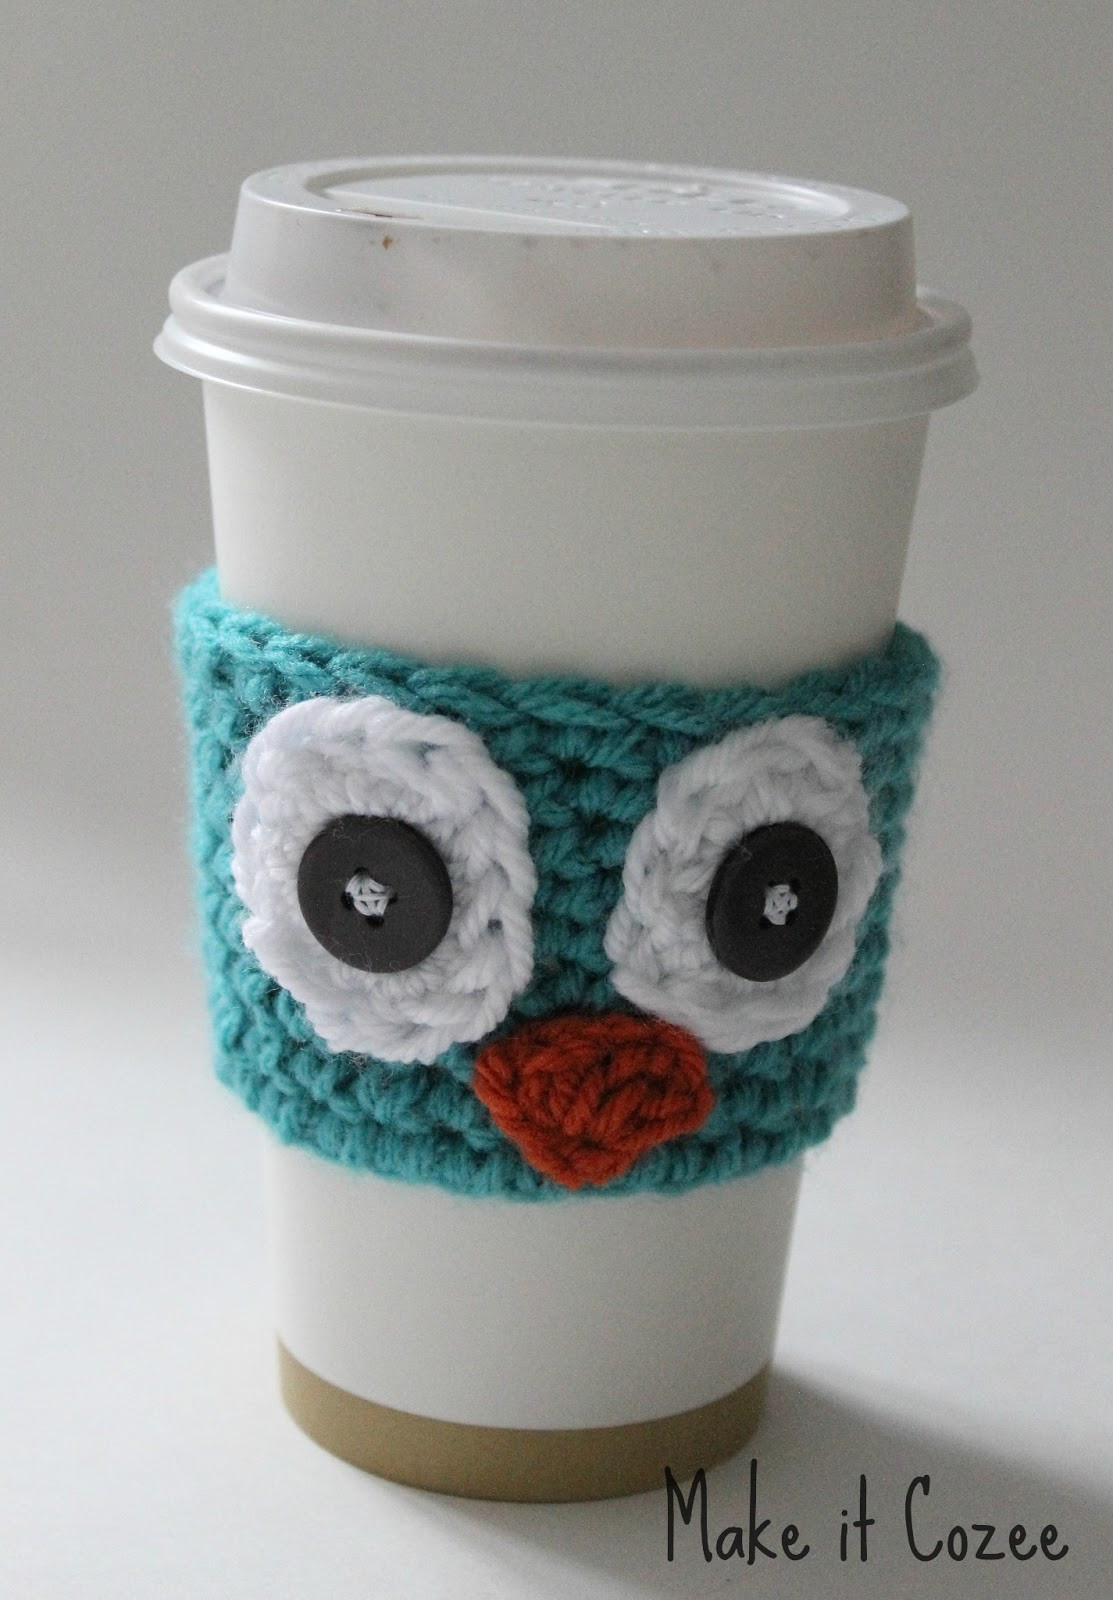 Crochet Coffee Cup Cozy Inspirational Make It Cozee Crochet Owl Coffee Cozy Of Crochet Coffee Cup Cozy Awesome Crochet and Other Stuff Crochet A Mug Cozy Free Pattern